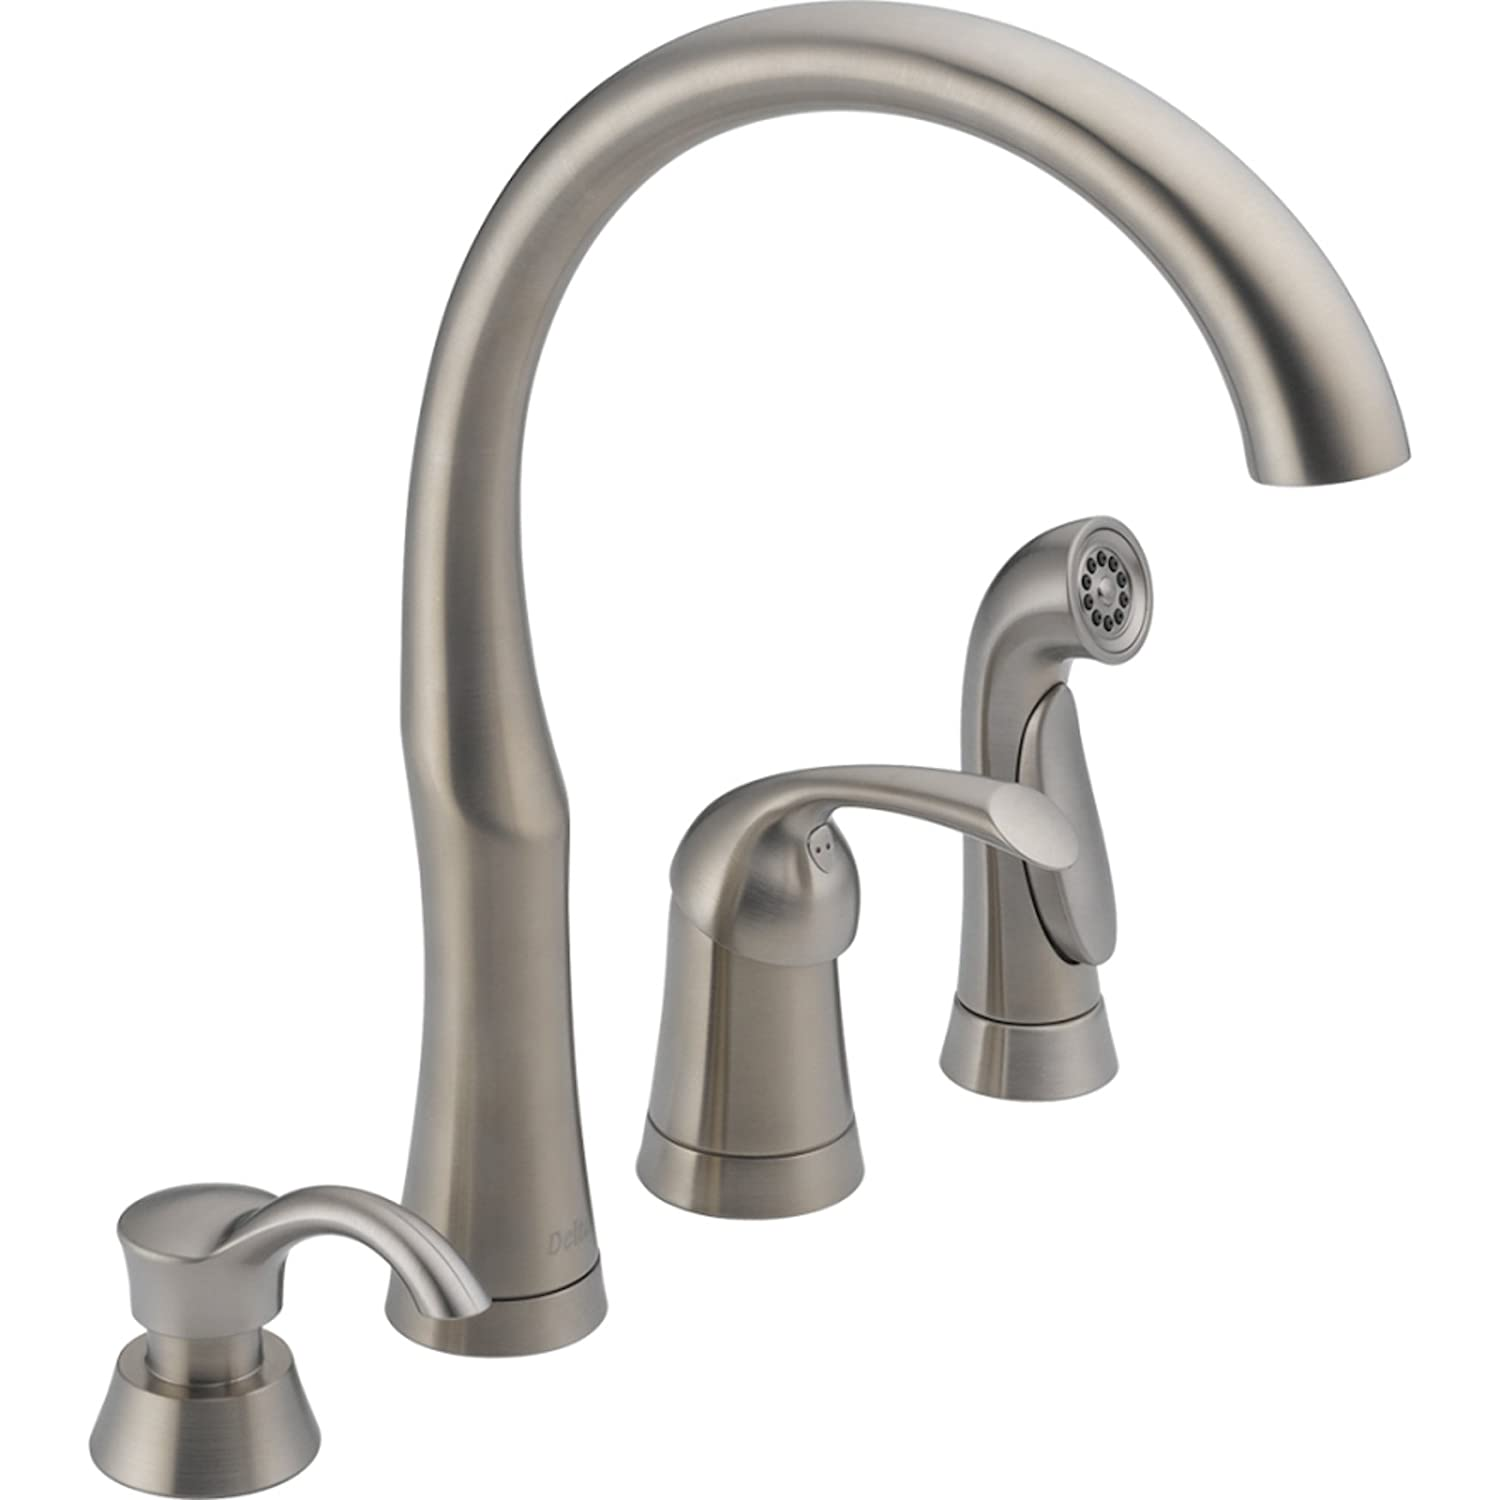 Delta 11946-SSSD-DST Bellini Single Handle Kitchen Faucet with Spray and Soap Dispenser, Stainless